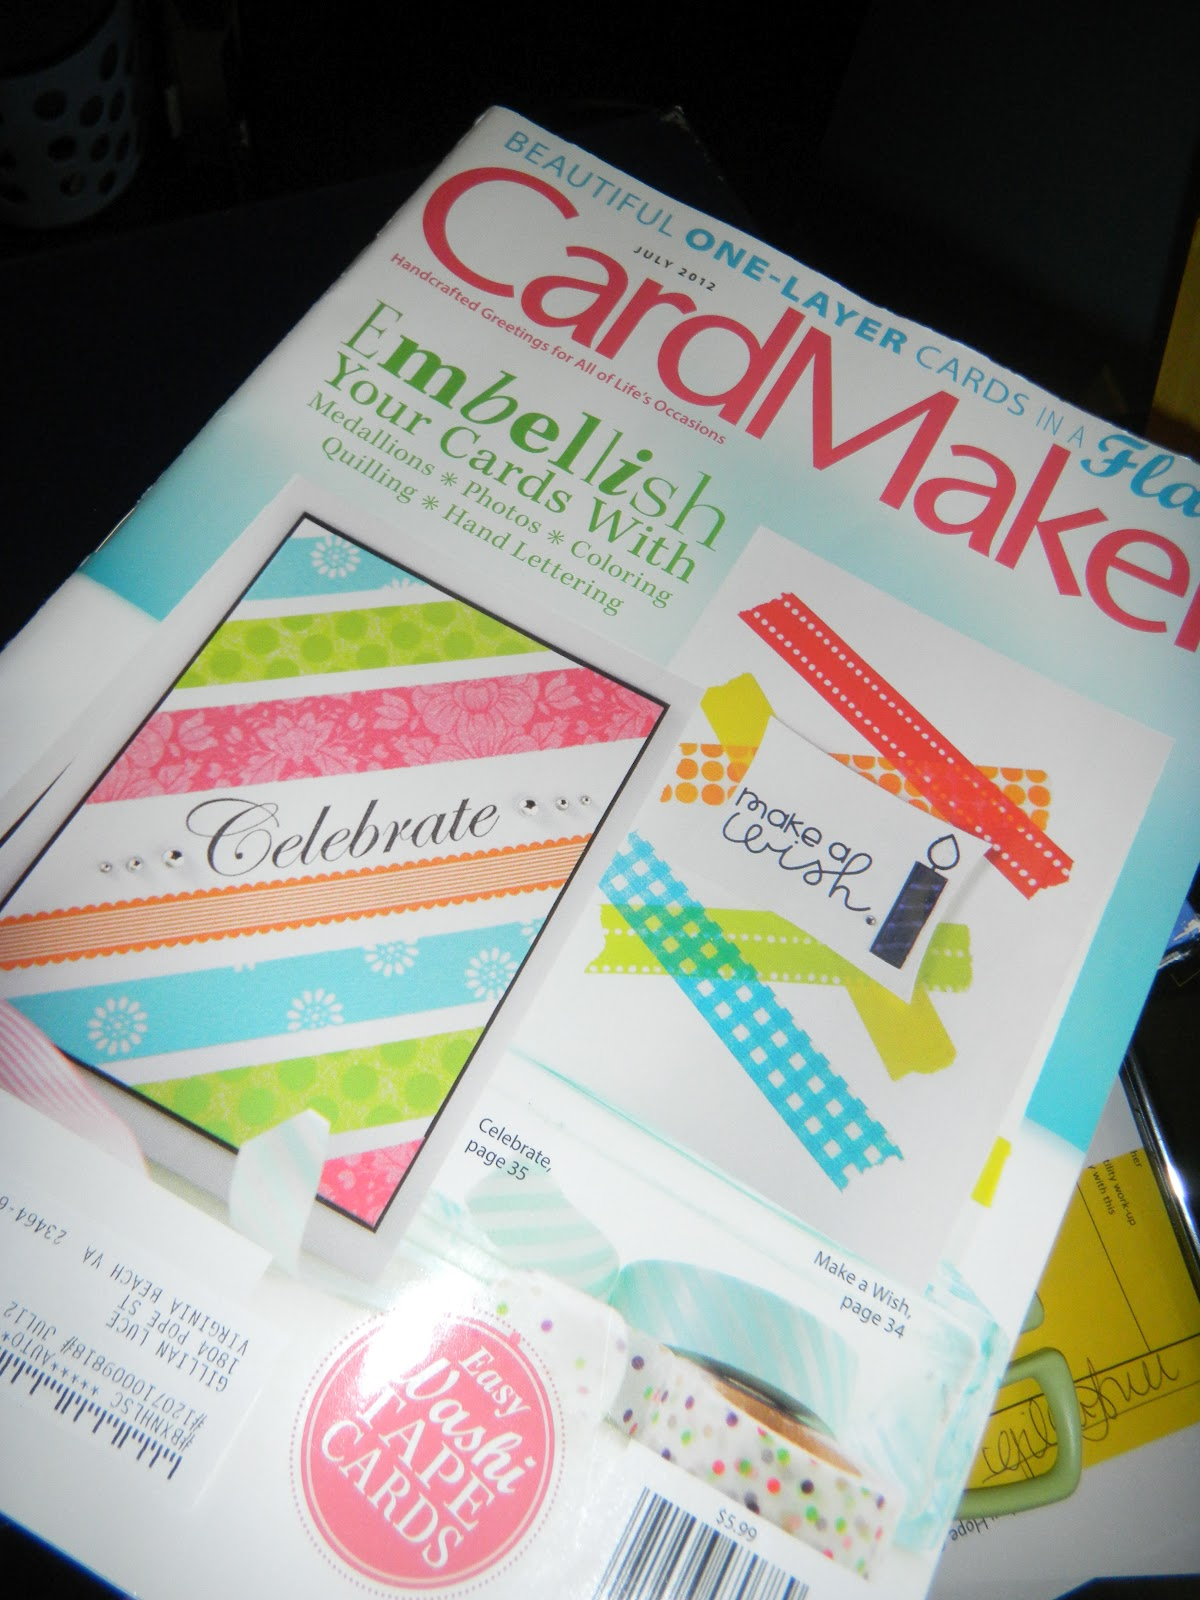 Lovely Cool Card Making Ideas Part - 13: My Grandmother Got Me This Card Making Magazine Subscription So I Looked  Through It And Found A Really Cool Idea For Making An Accordian Circle To  Offer A ...